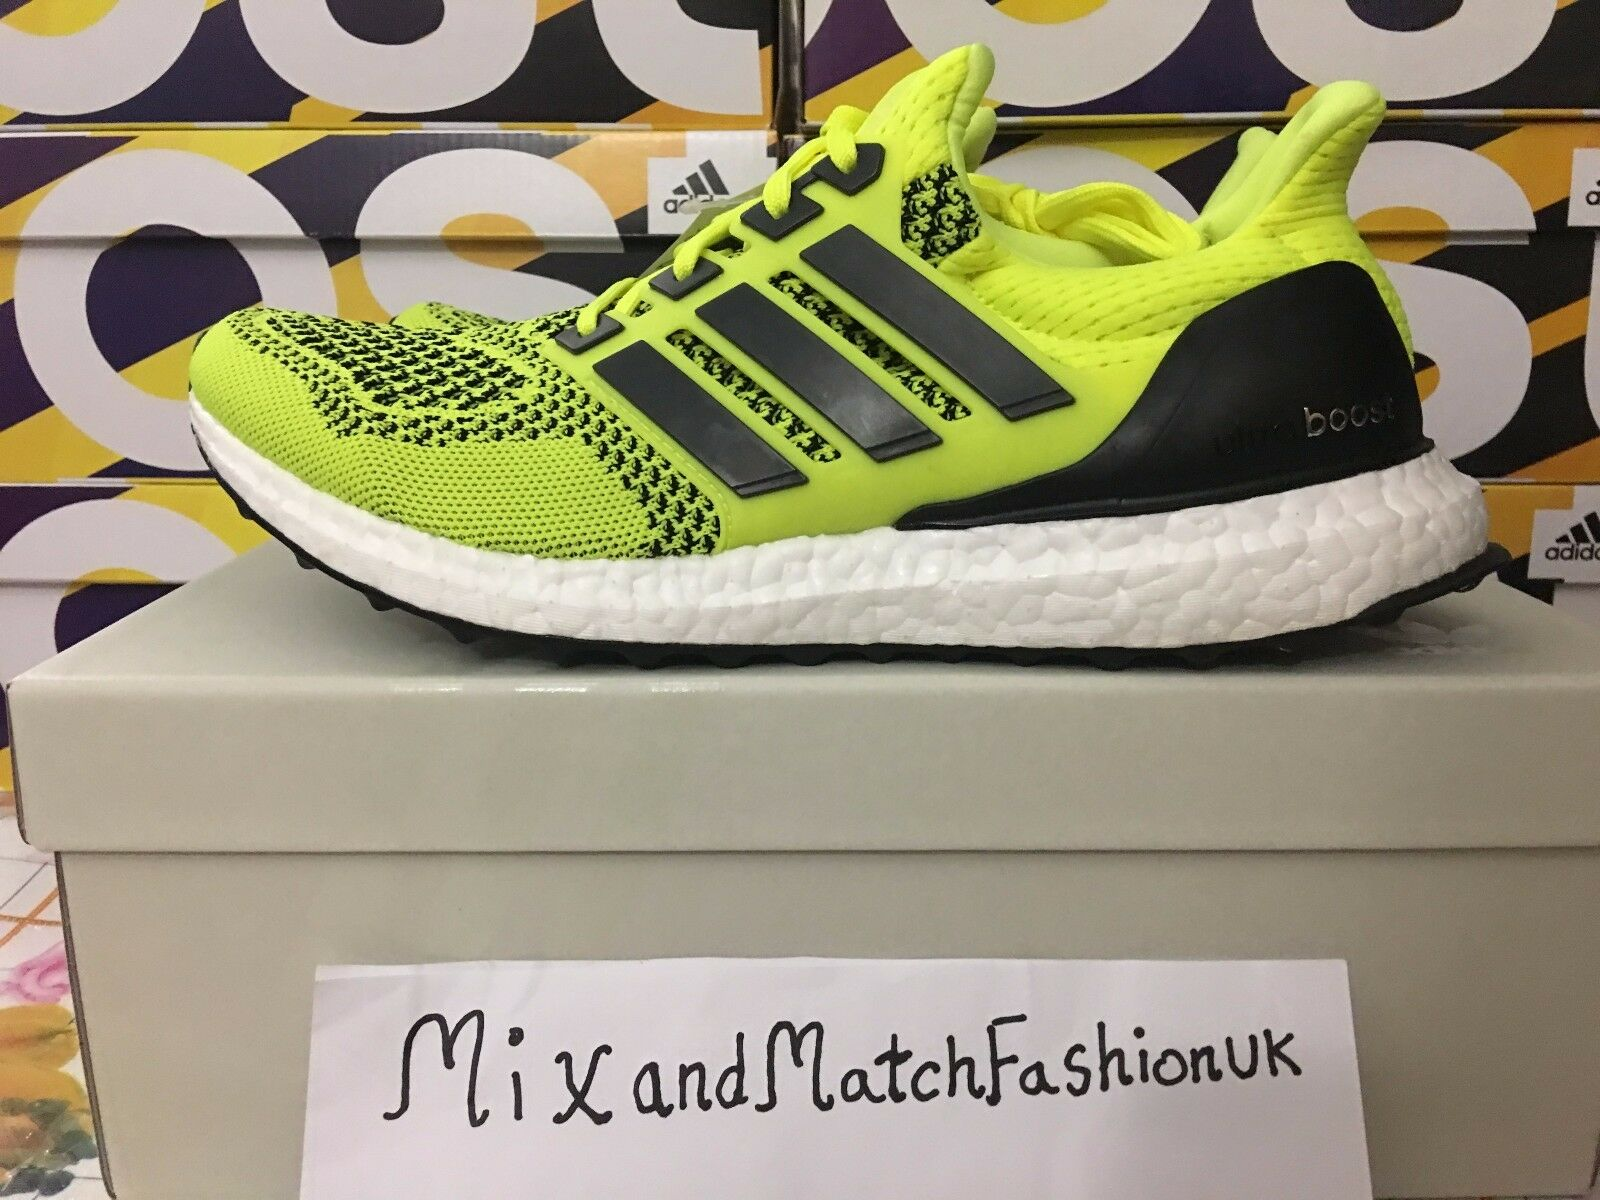 Adidas Ultra Boost 1.0 Solar Yellow 3M S77414 UK 8 US 8.5 EU 42 Limited Edition